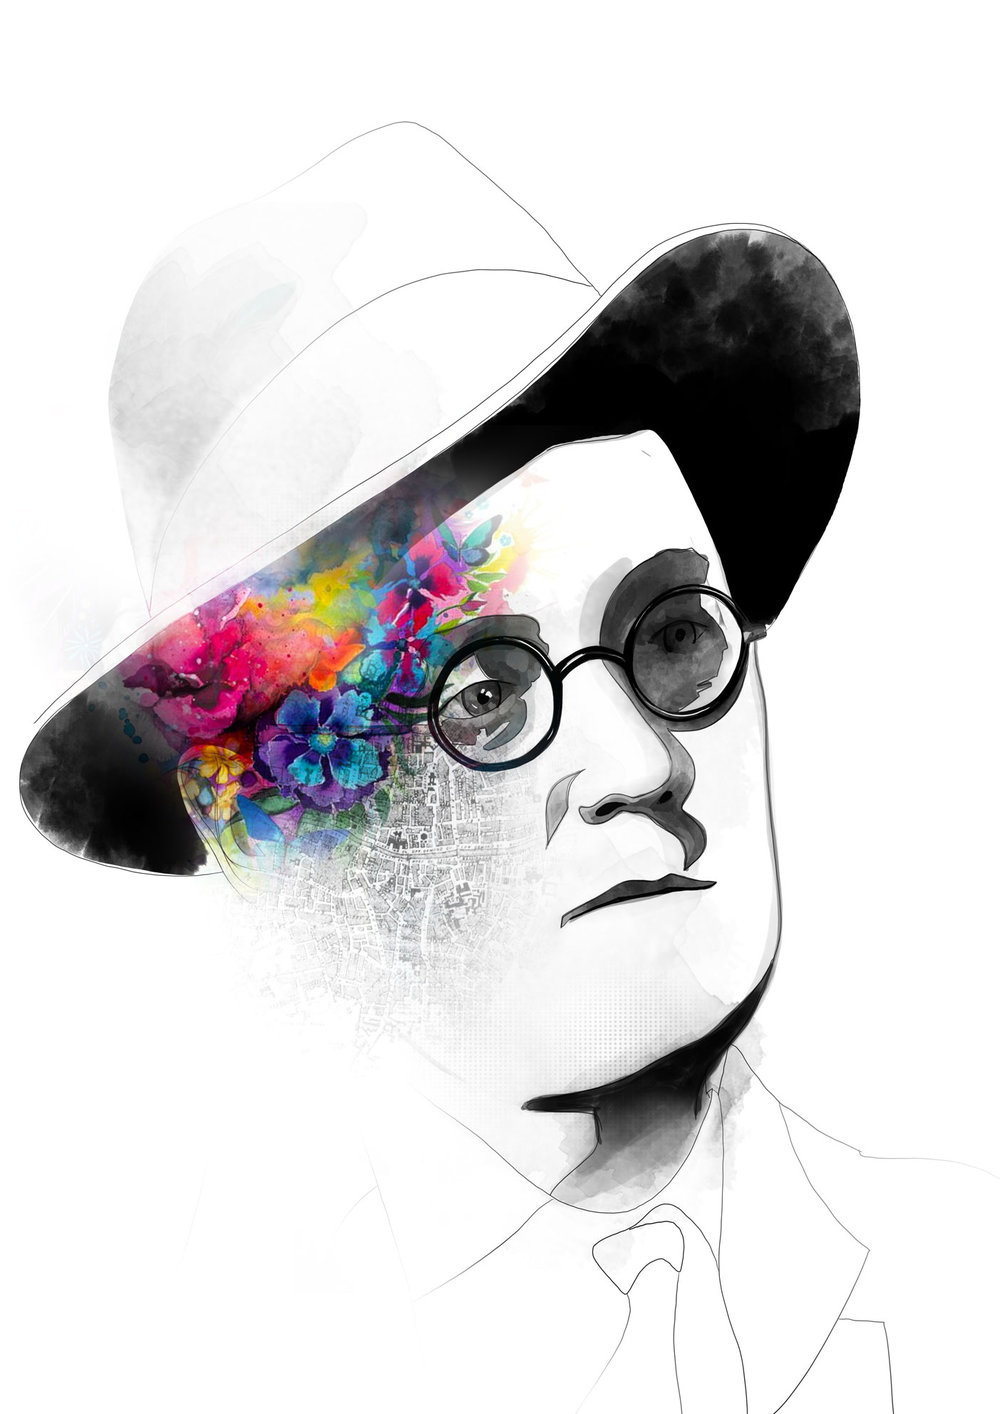 Reddin-designs-James-Joyce-detailed-design-lo-res.jpg